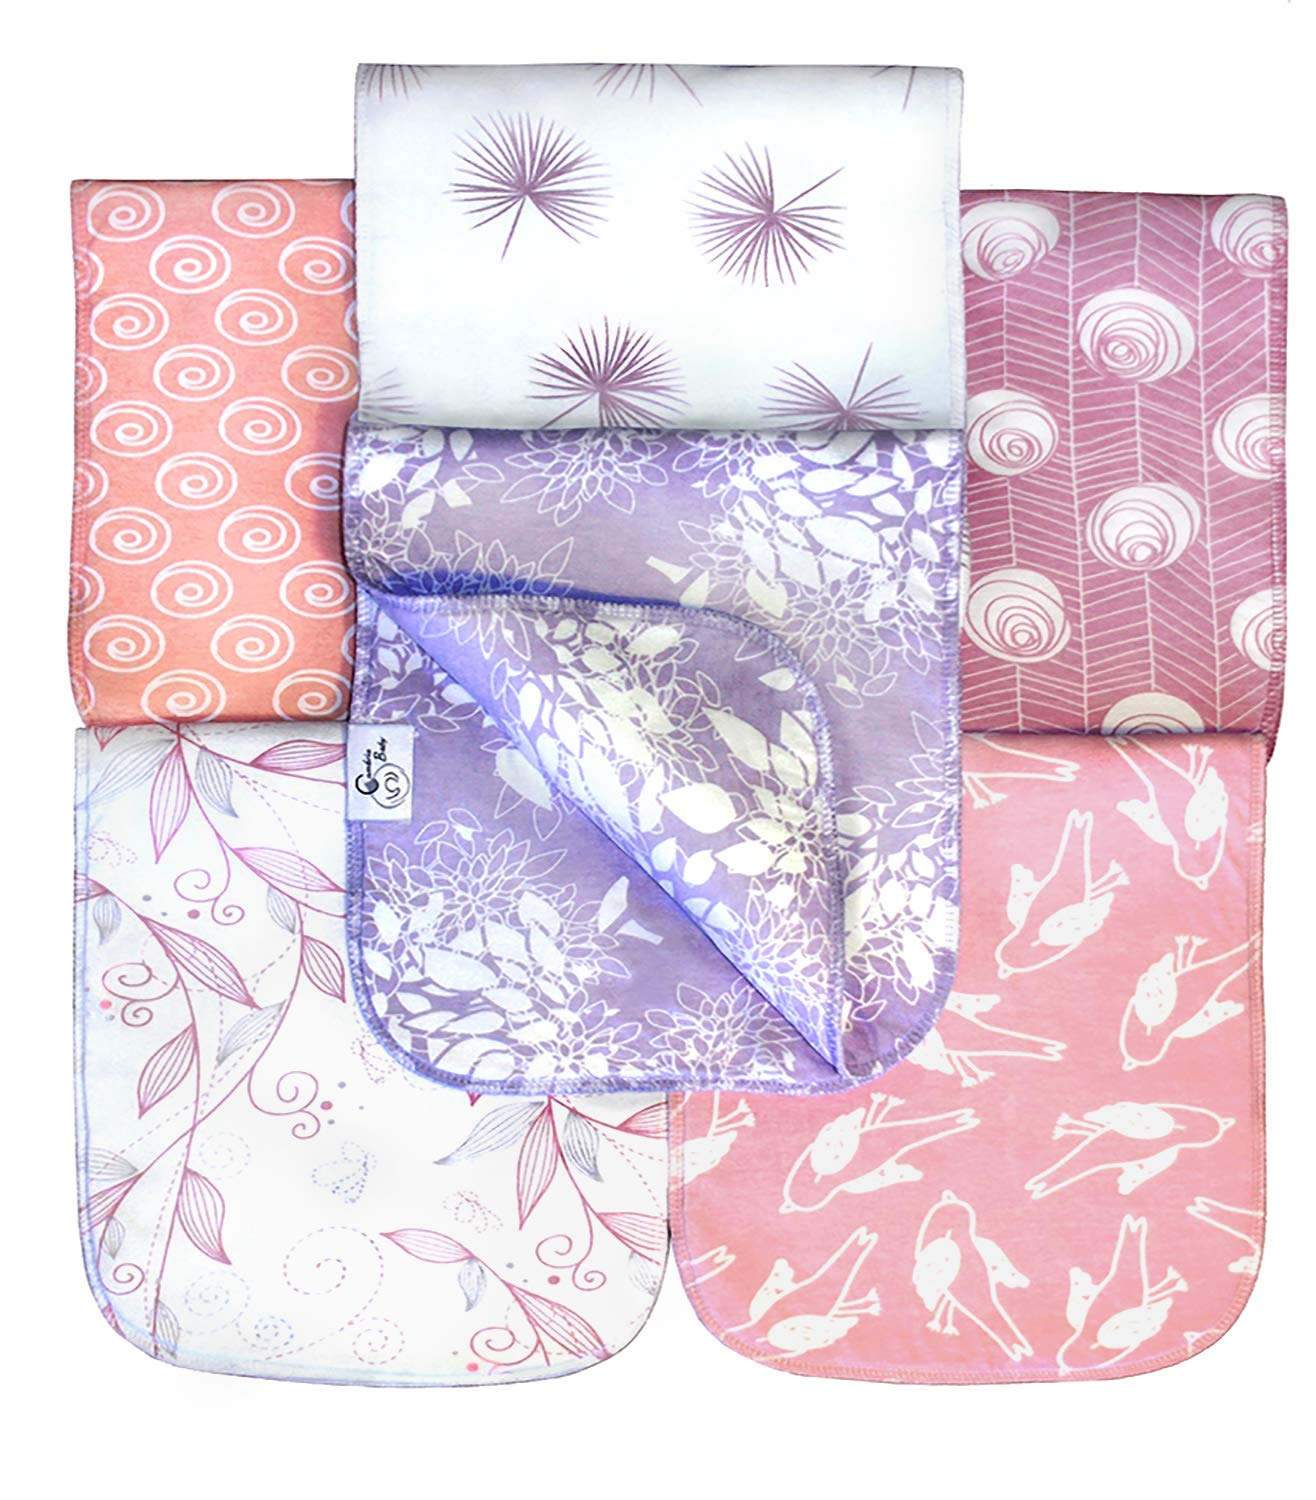 6 Pack Organic Premium Cotton Burp Cloths for Girls, Extra Large, Reversible, with 3 Layer Inner Fleece Absorbency, 10''x22'', Baby Shower Gift